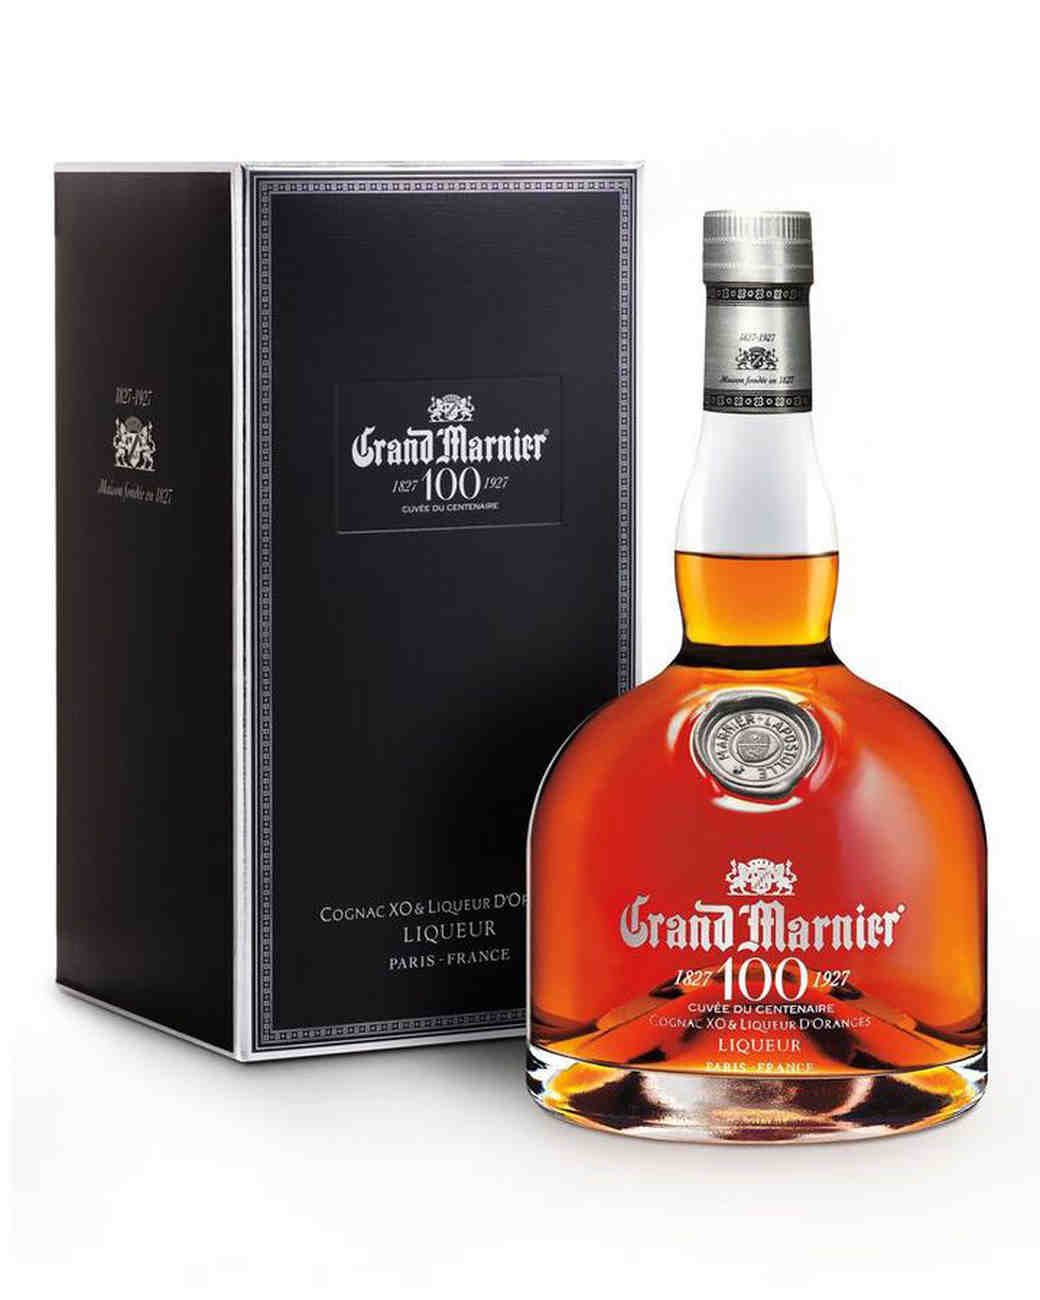 grand marnier cognac valentine's day gift guide for him